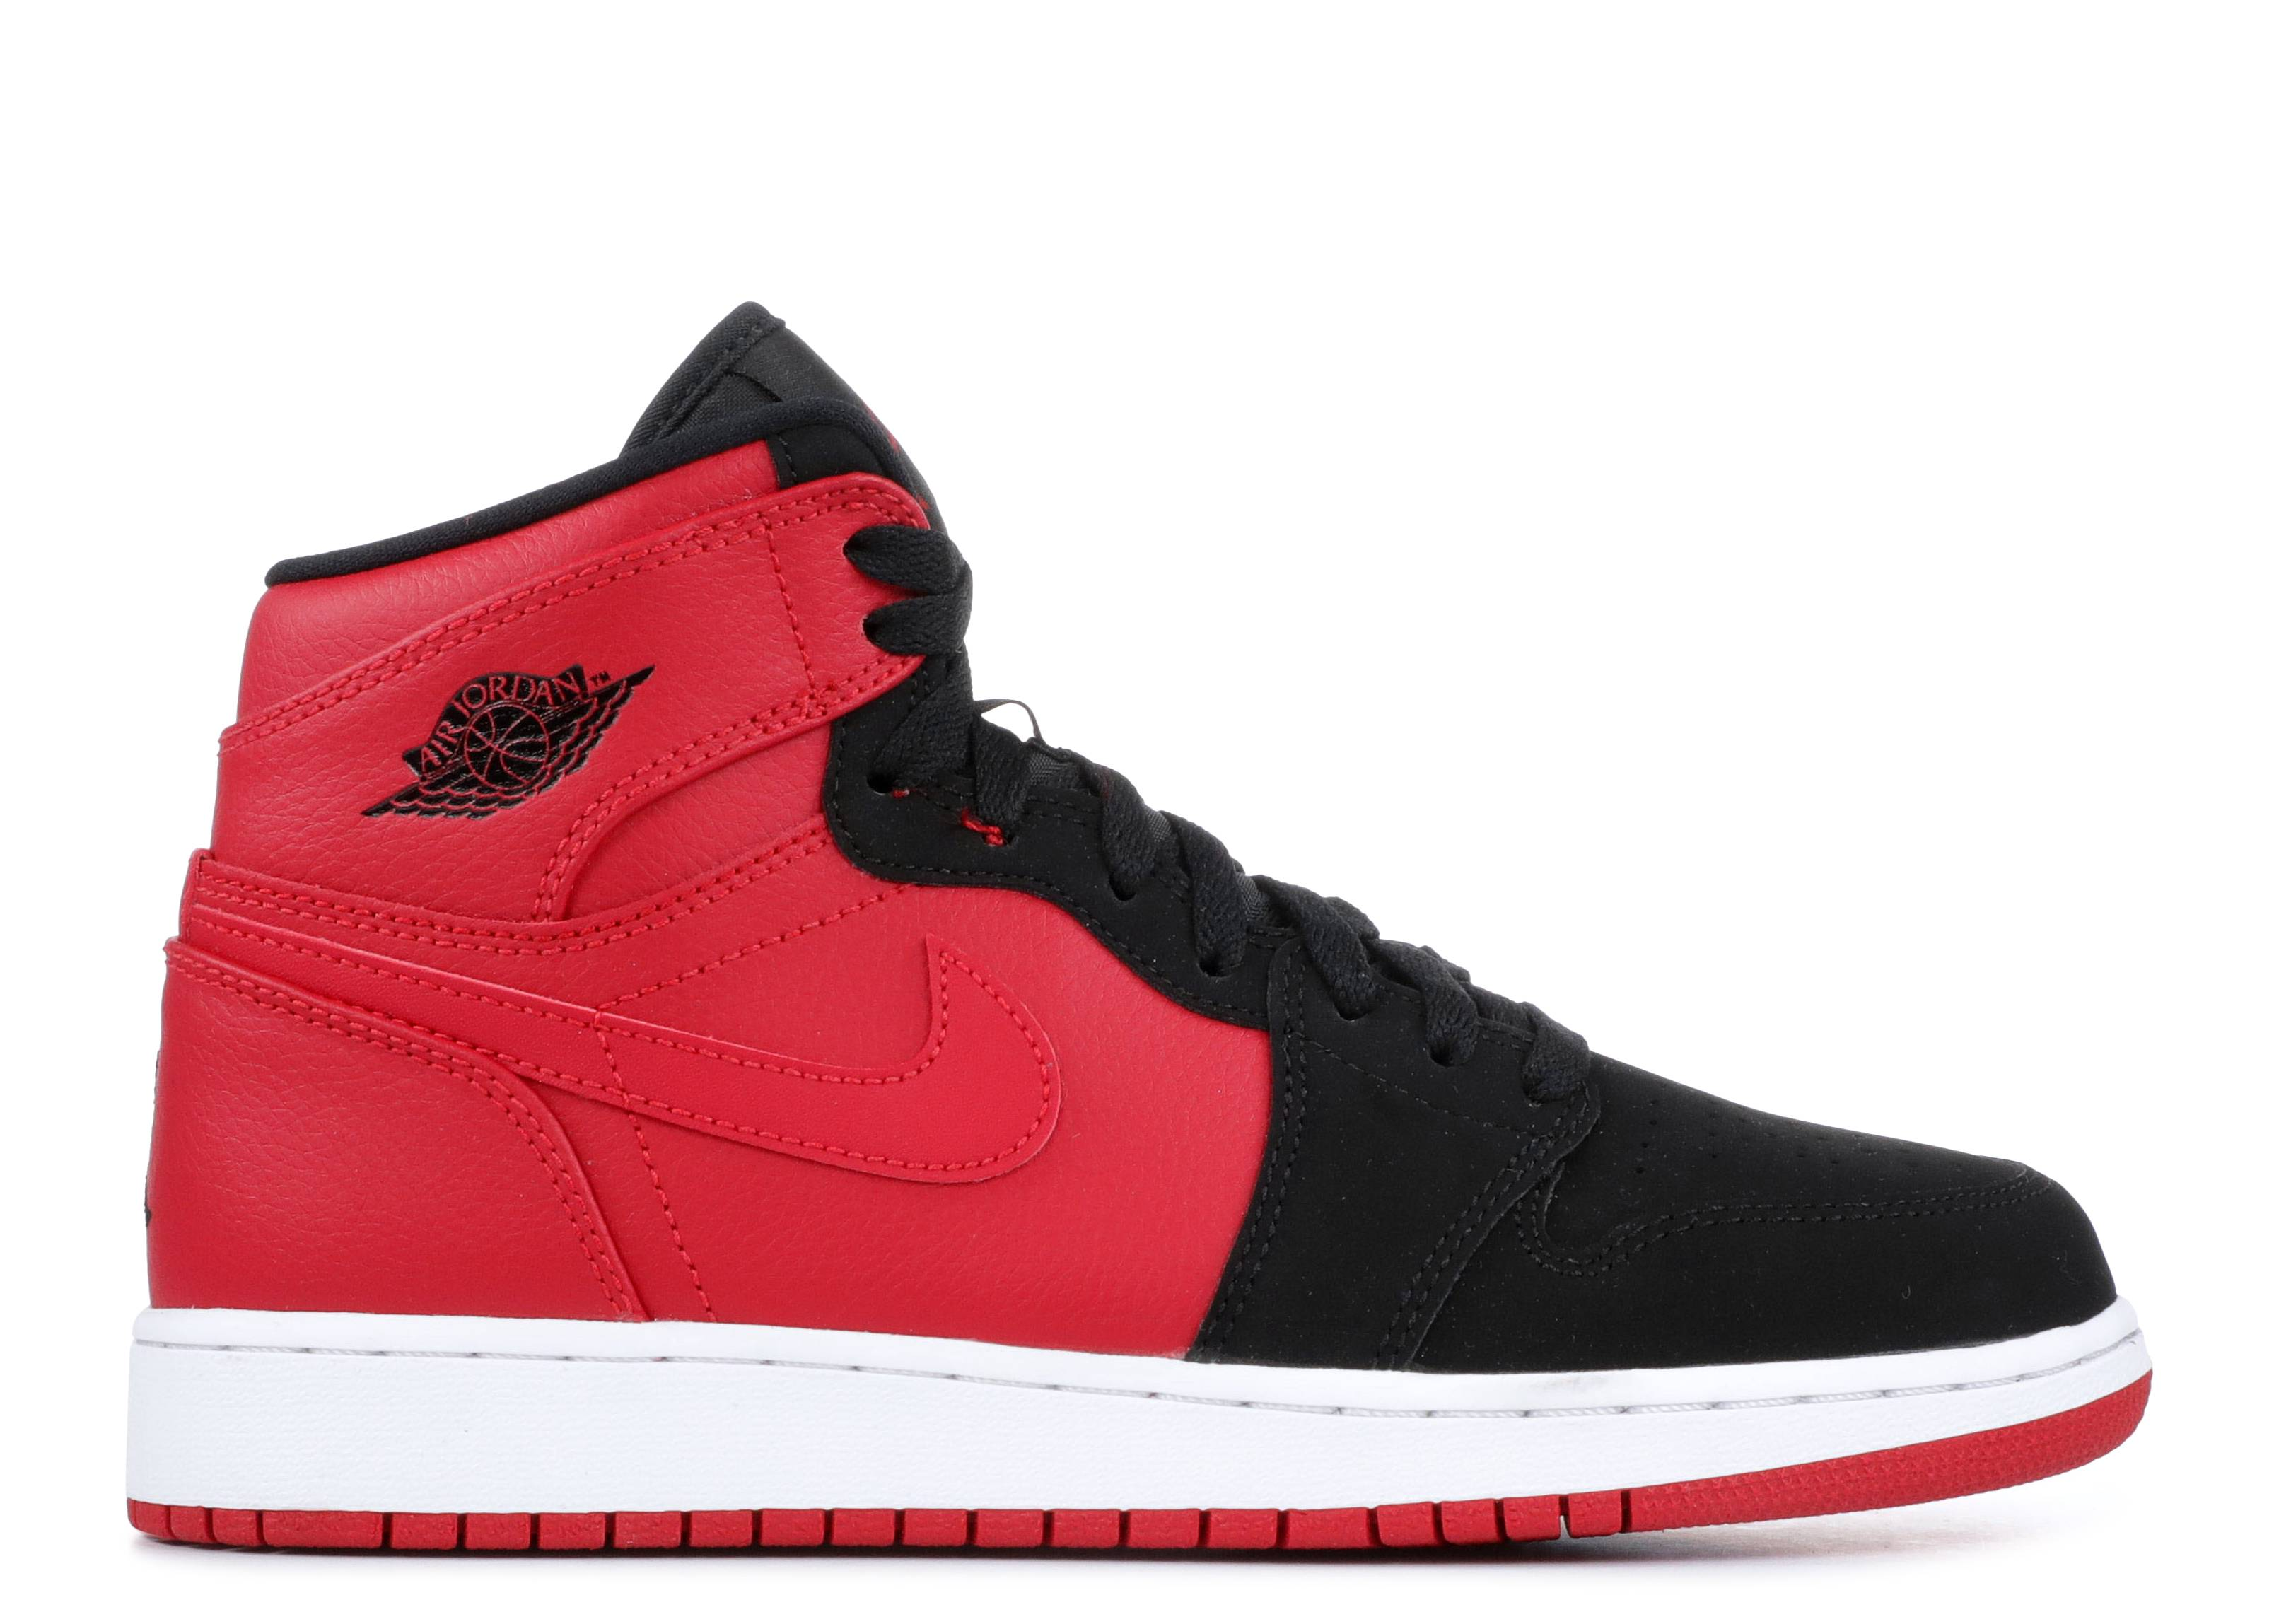 Air Jordan 1 Retro high bg